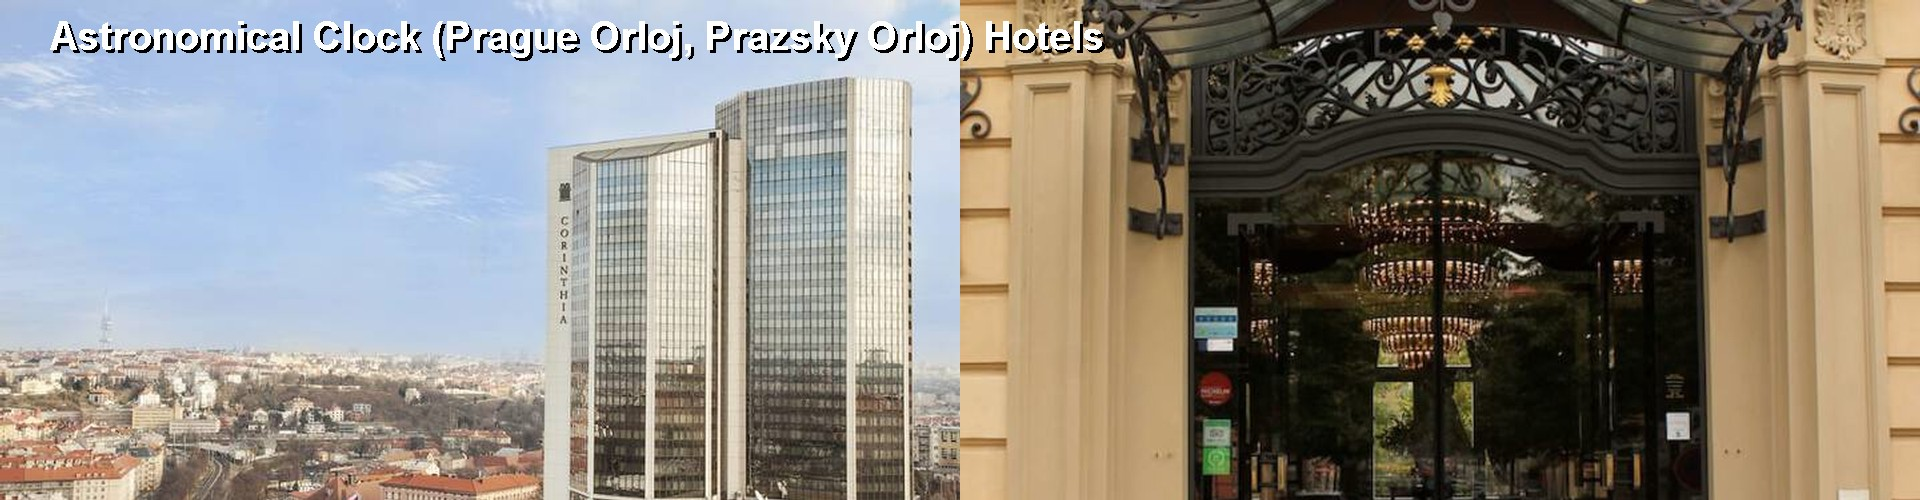 5 Best Hotels near Astronomical Clock (Prague Orloj, Prazsky Orloj)